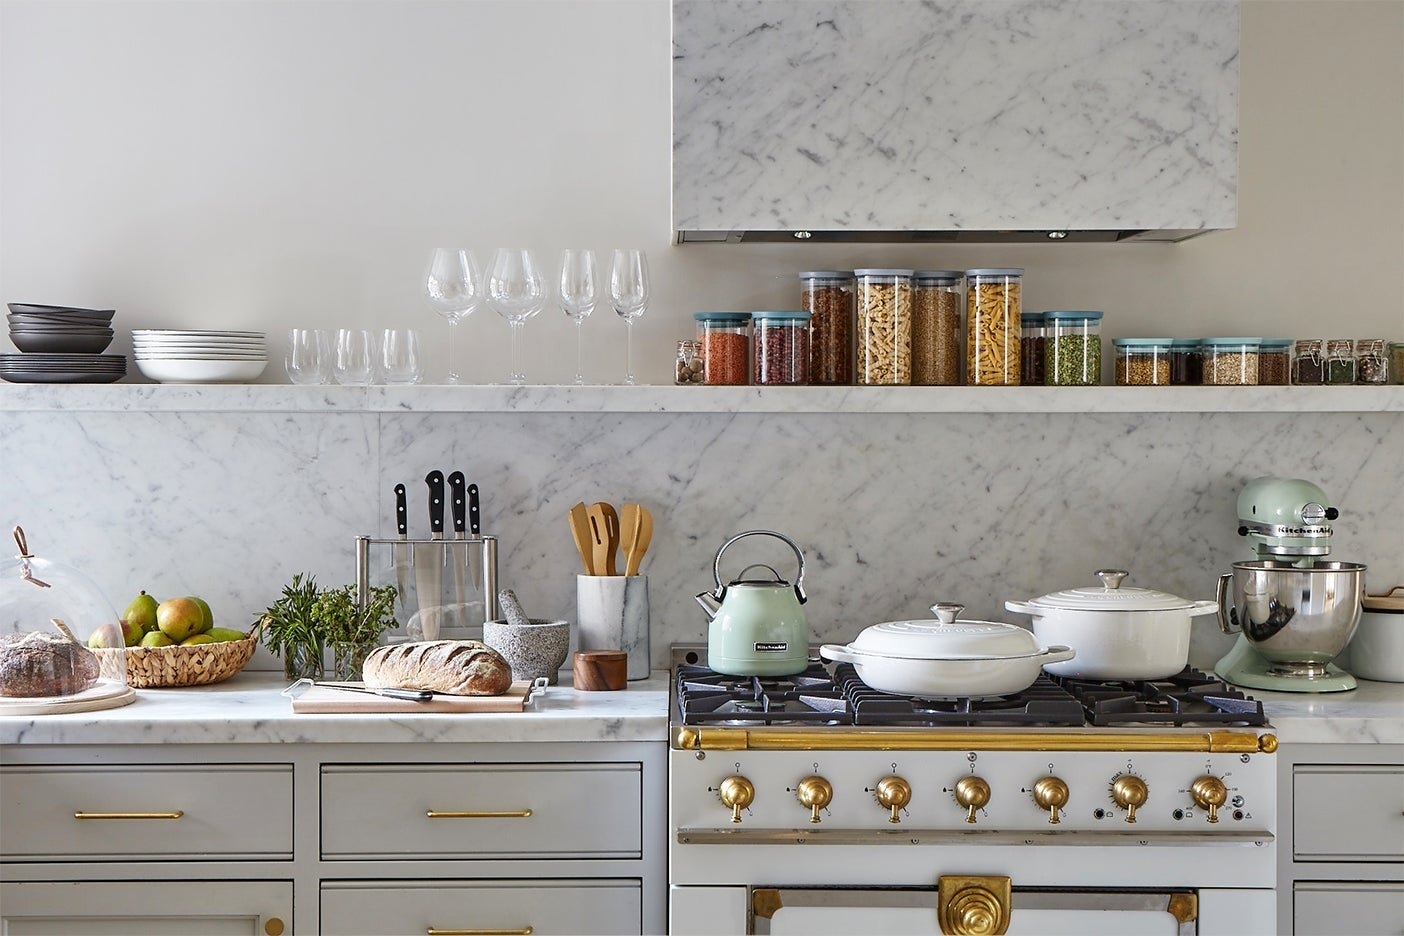 We're seeing this appliance in so many celebrity kitchens